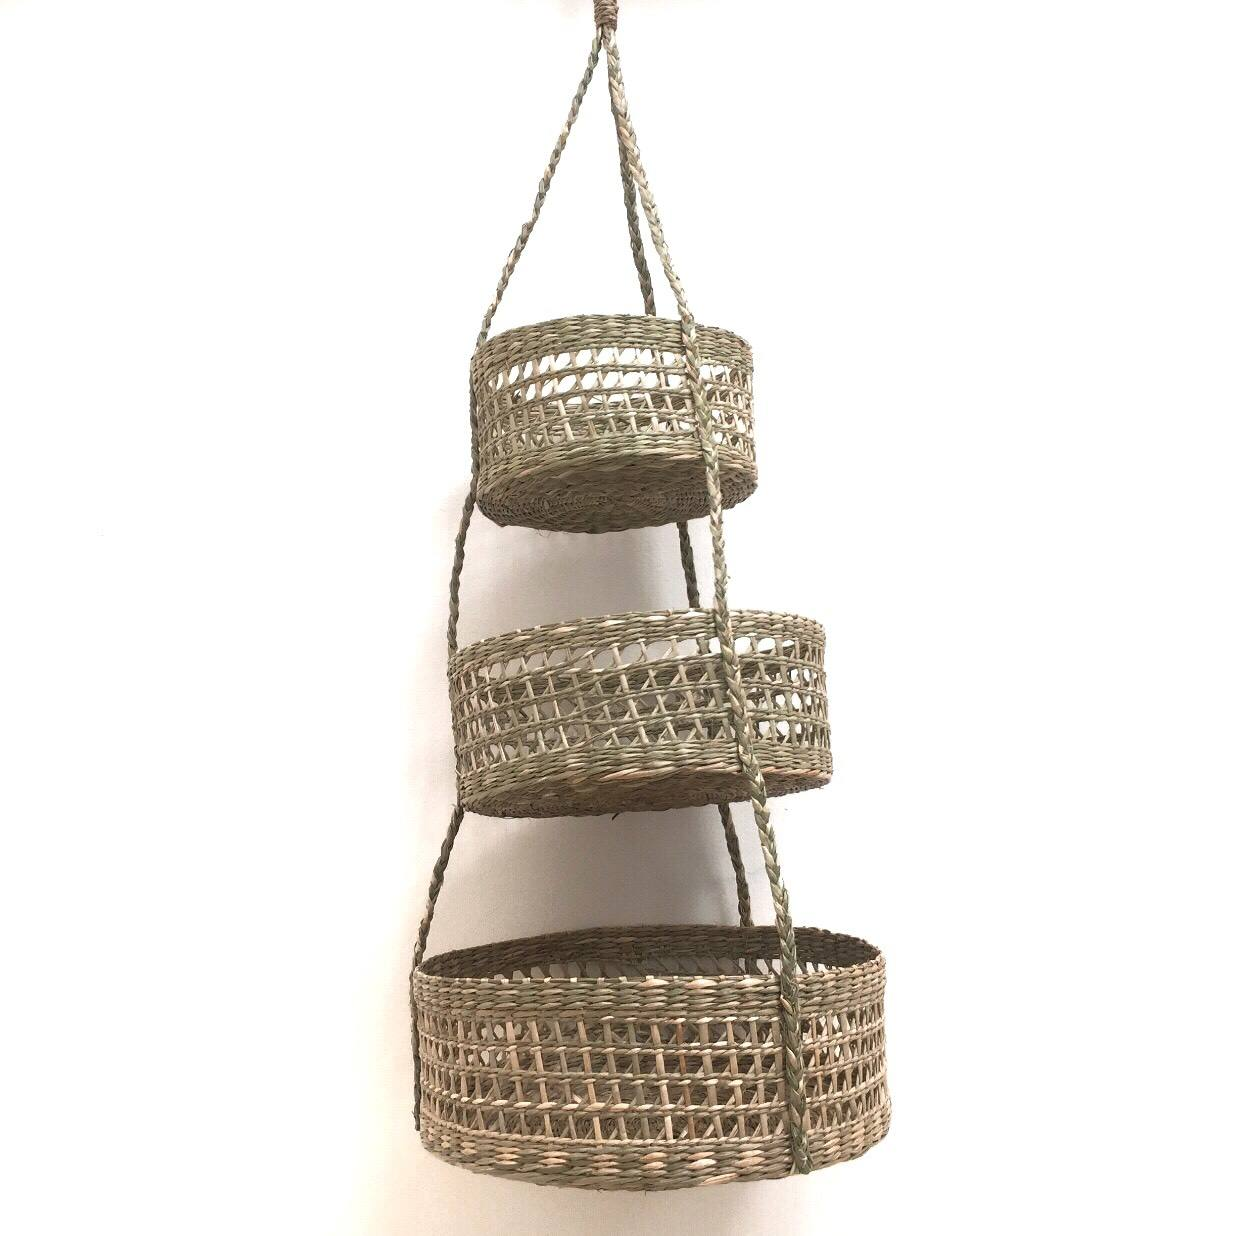 Handmade seagrass basket , Vietnam recycle seagrass basket safe for plant